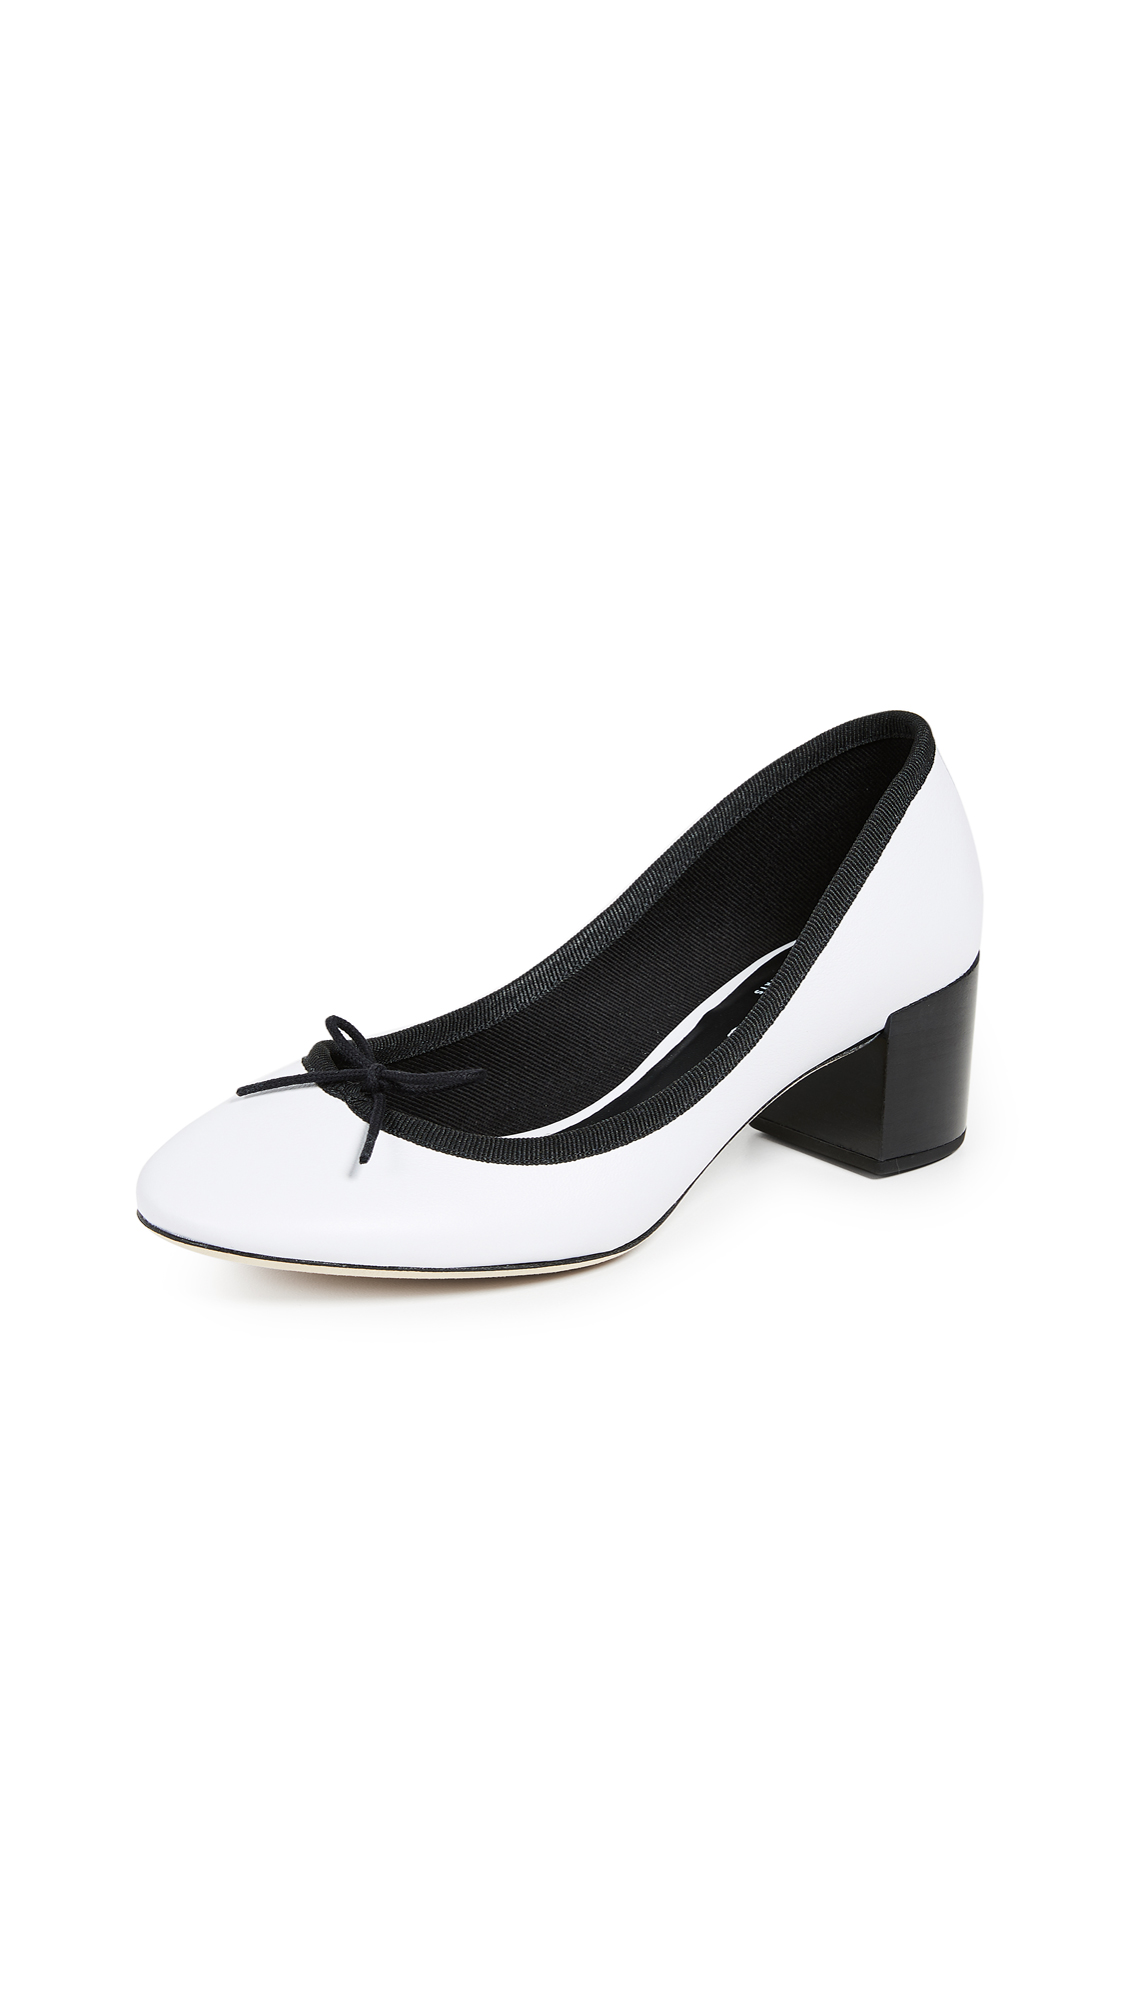 Repetto Farah Block Heel Pumps - Black/White